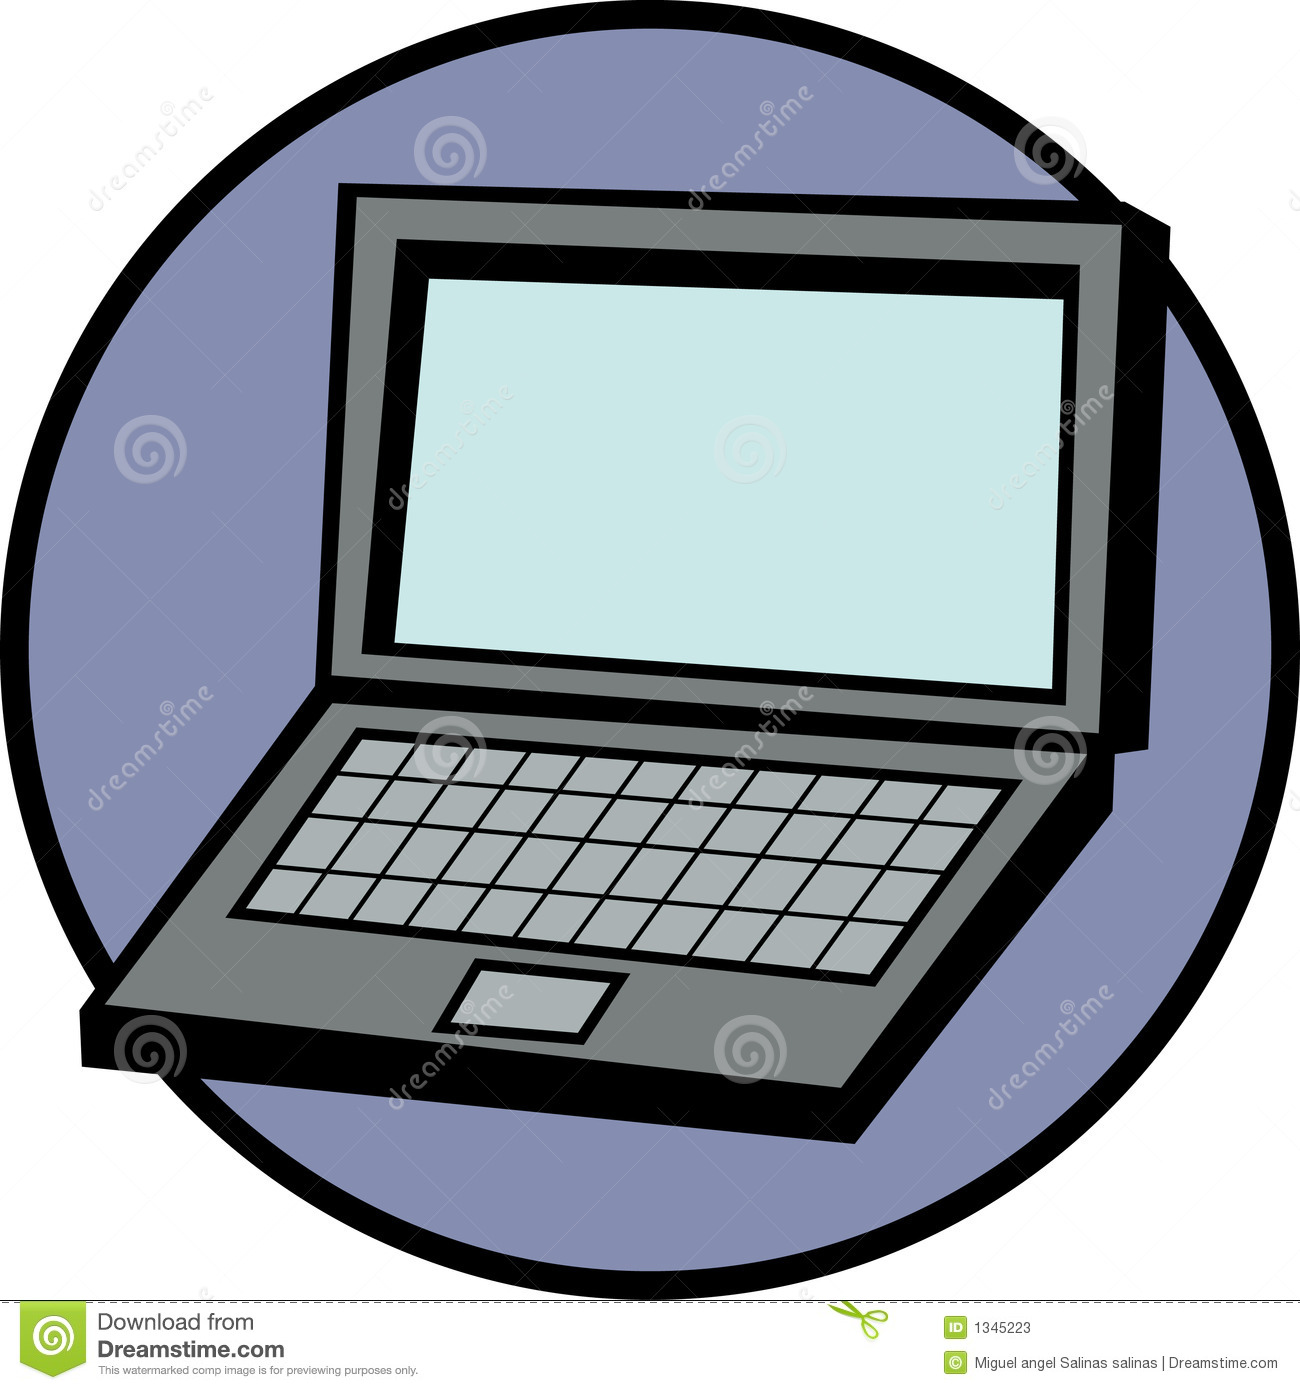 Laptop Computer Vector Illustration Stock Vector ... Laptop Vector Illustration